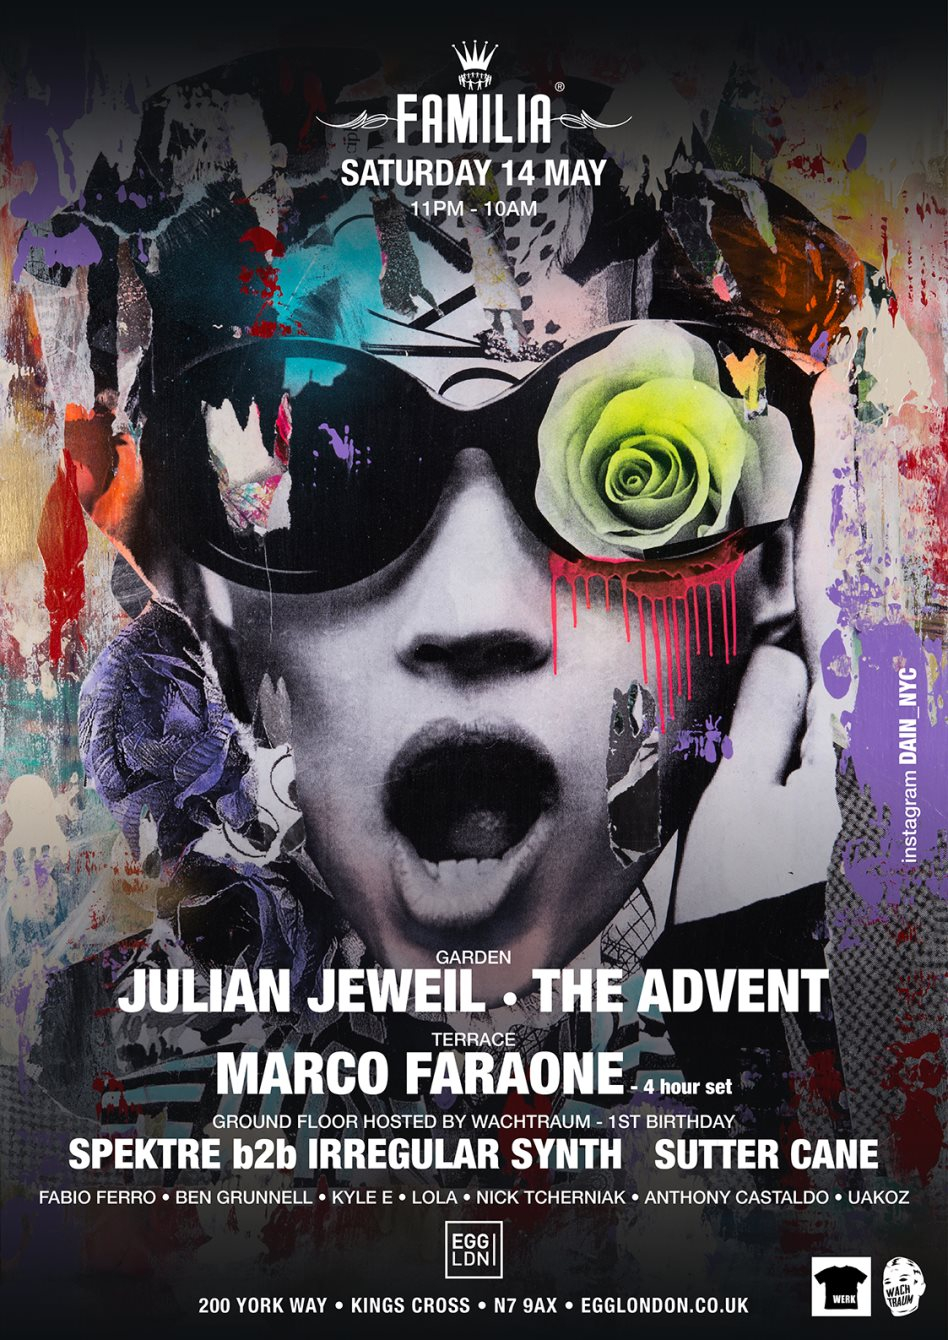 Page 1   14 May 2016   London   Familia: The Advent, Julian Jeweil, Marco Faraone, Spektr... Published by DjMaverix on Friday, 13 May 2016 in Live Set - Dance Hall - Party (Events)